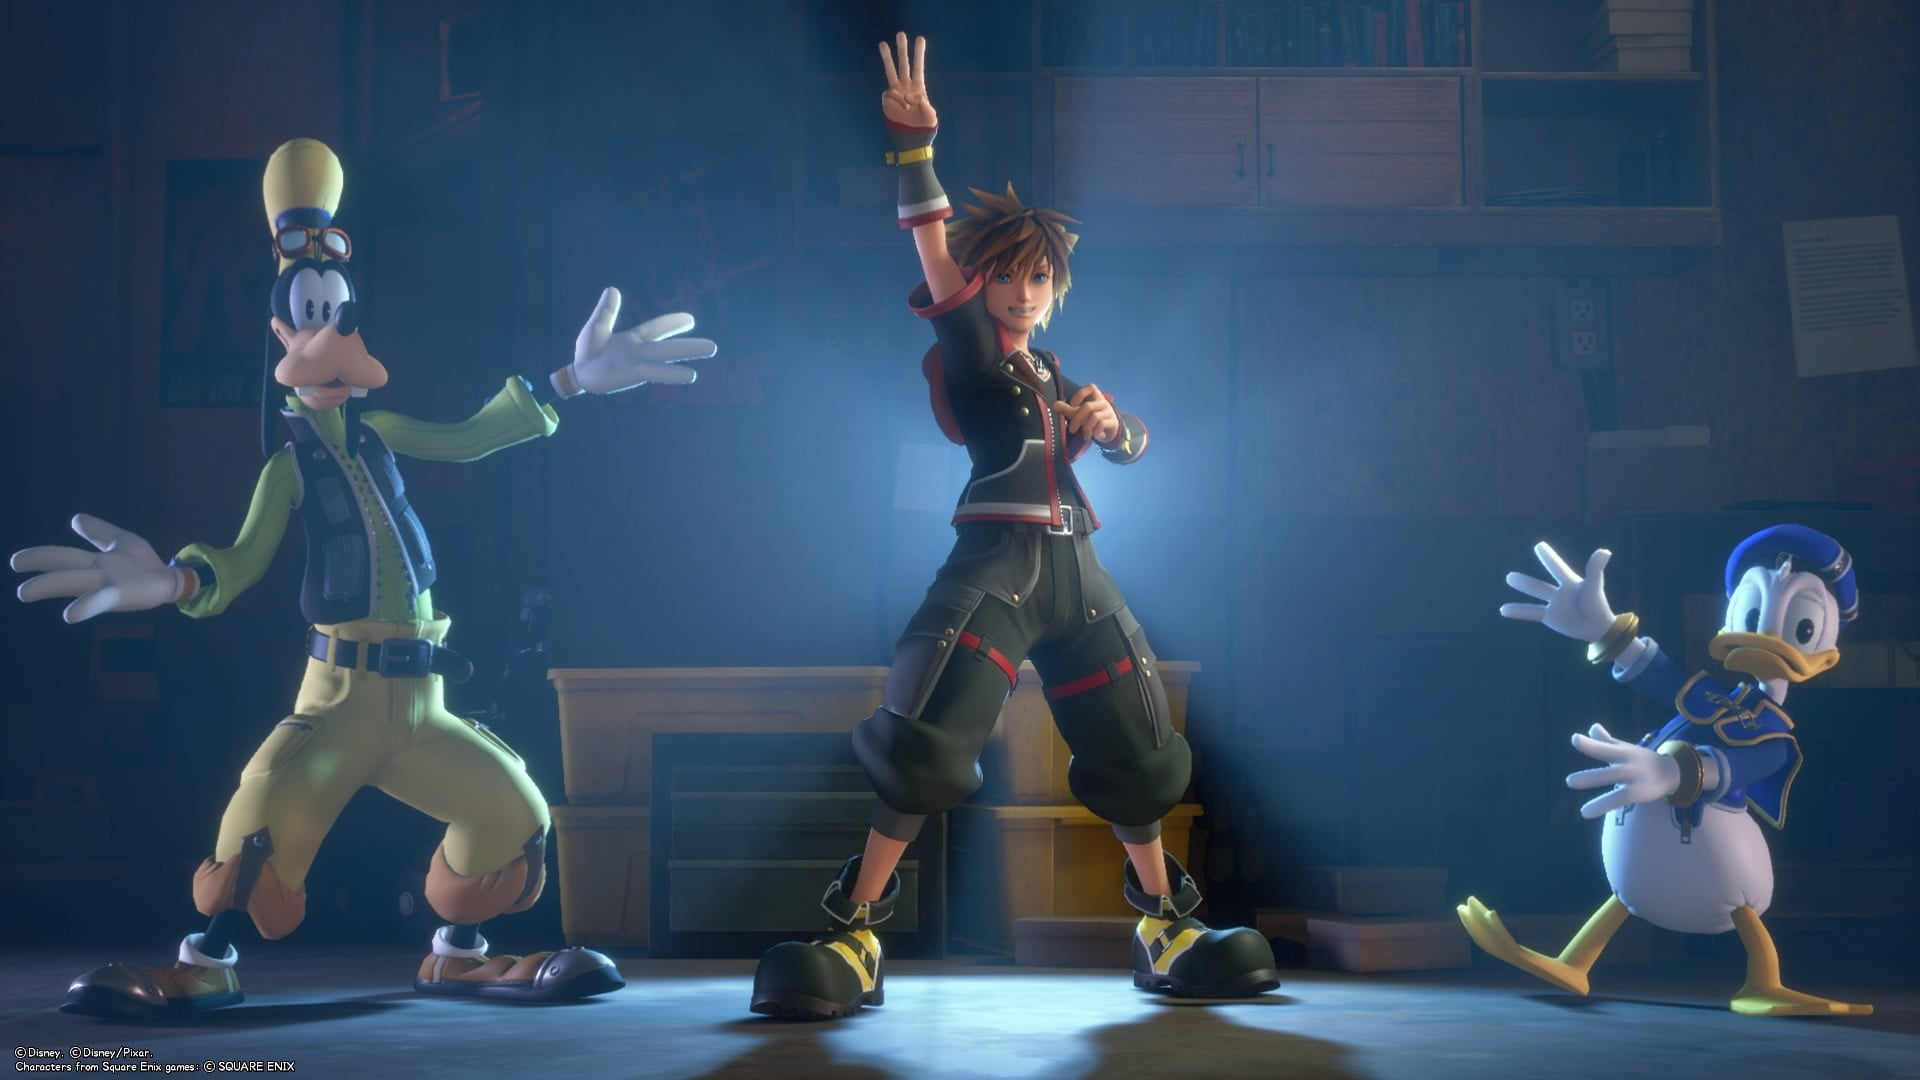 Kingdom Hearts 3 Tips And Tricks For The Mighty Keyblade Wielder